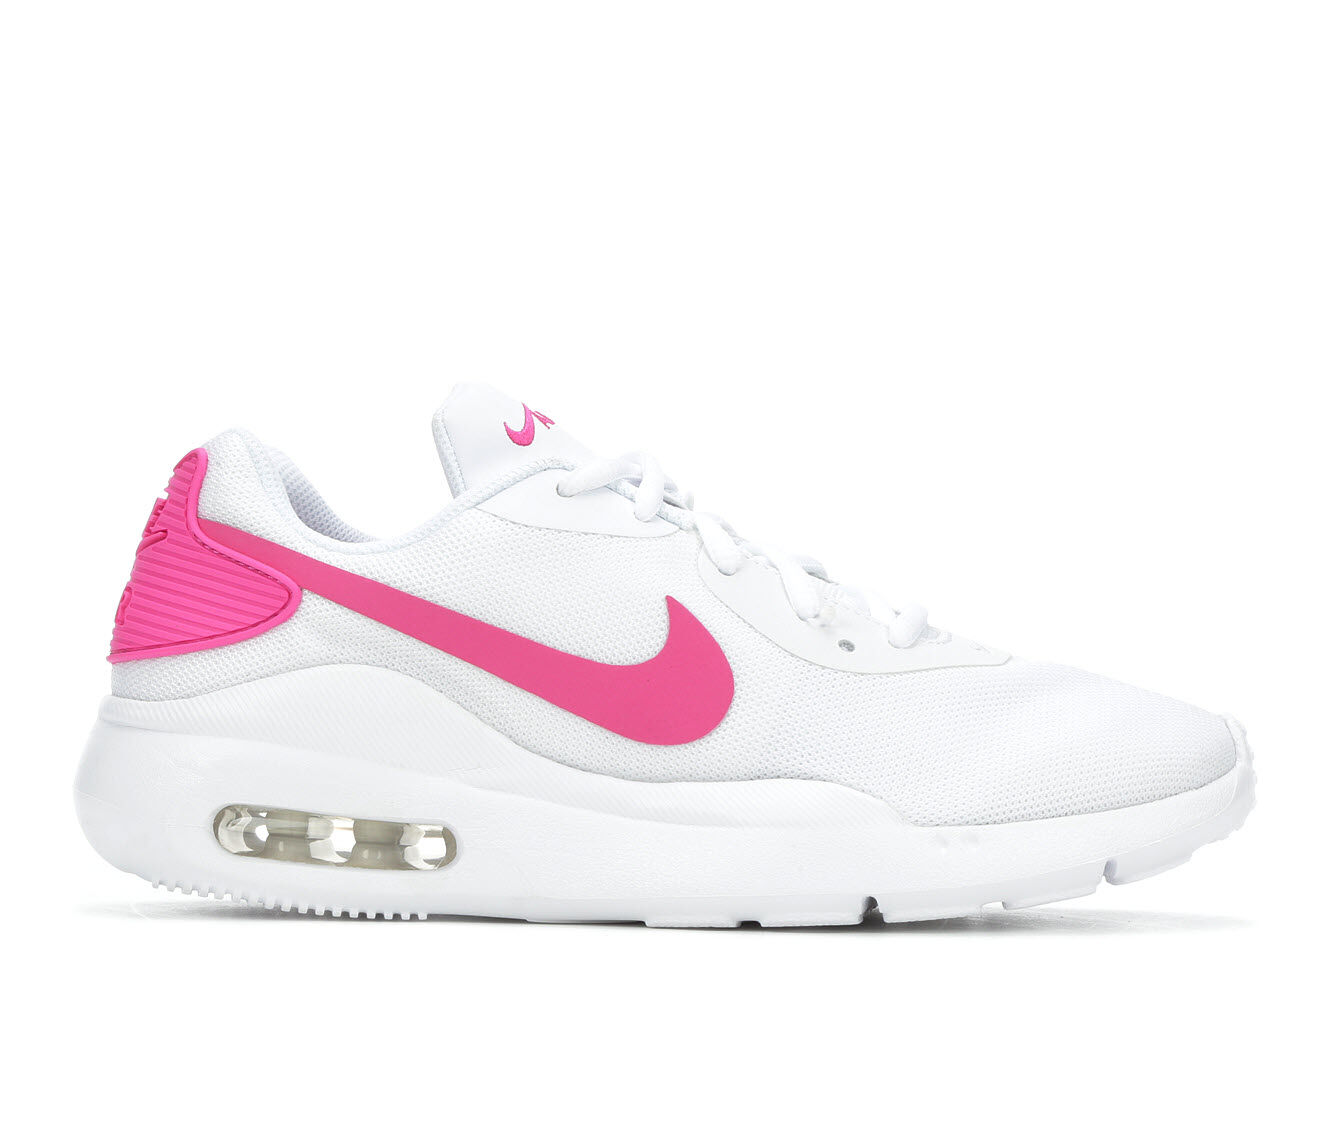 Women's Nike Air Max Oketo Sneakers White/Fuchsia